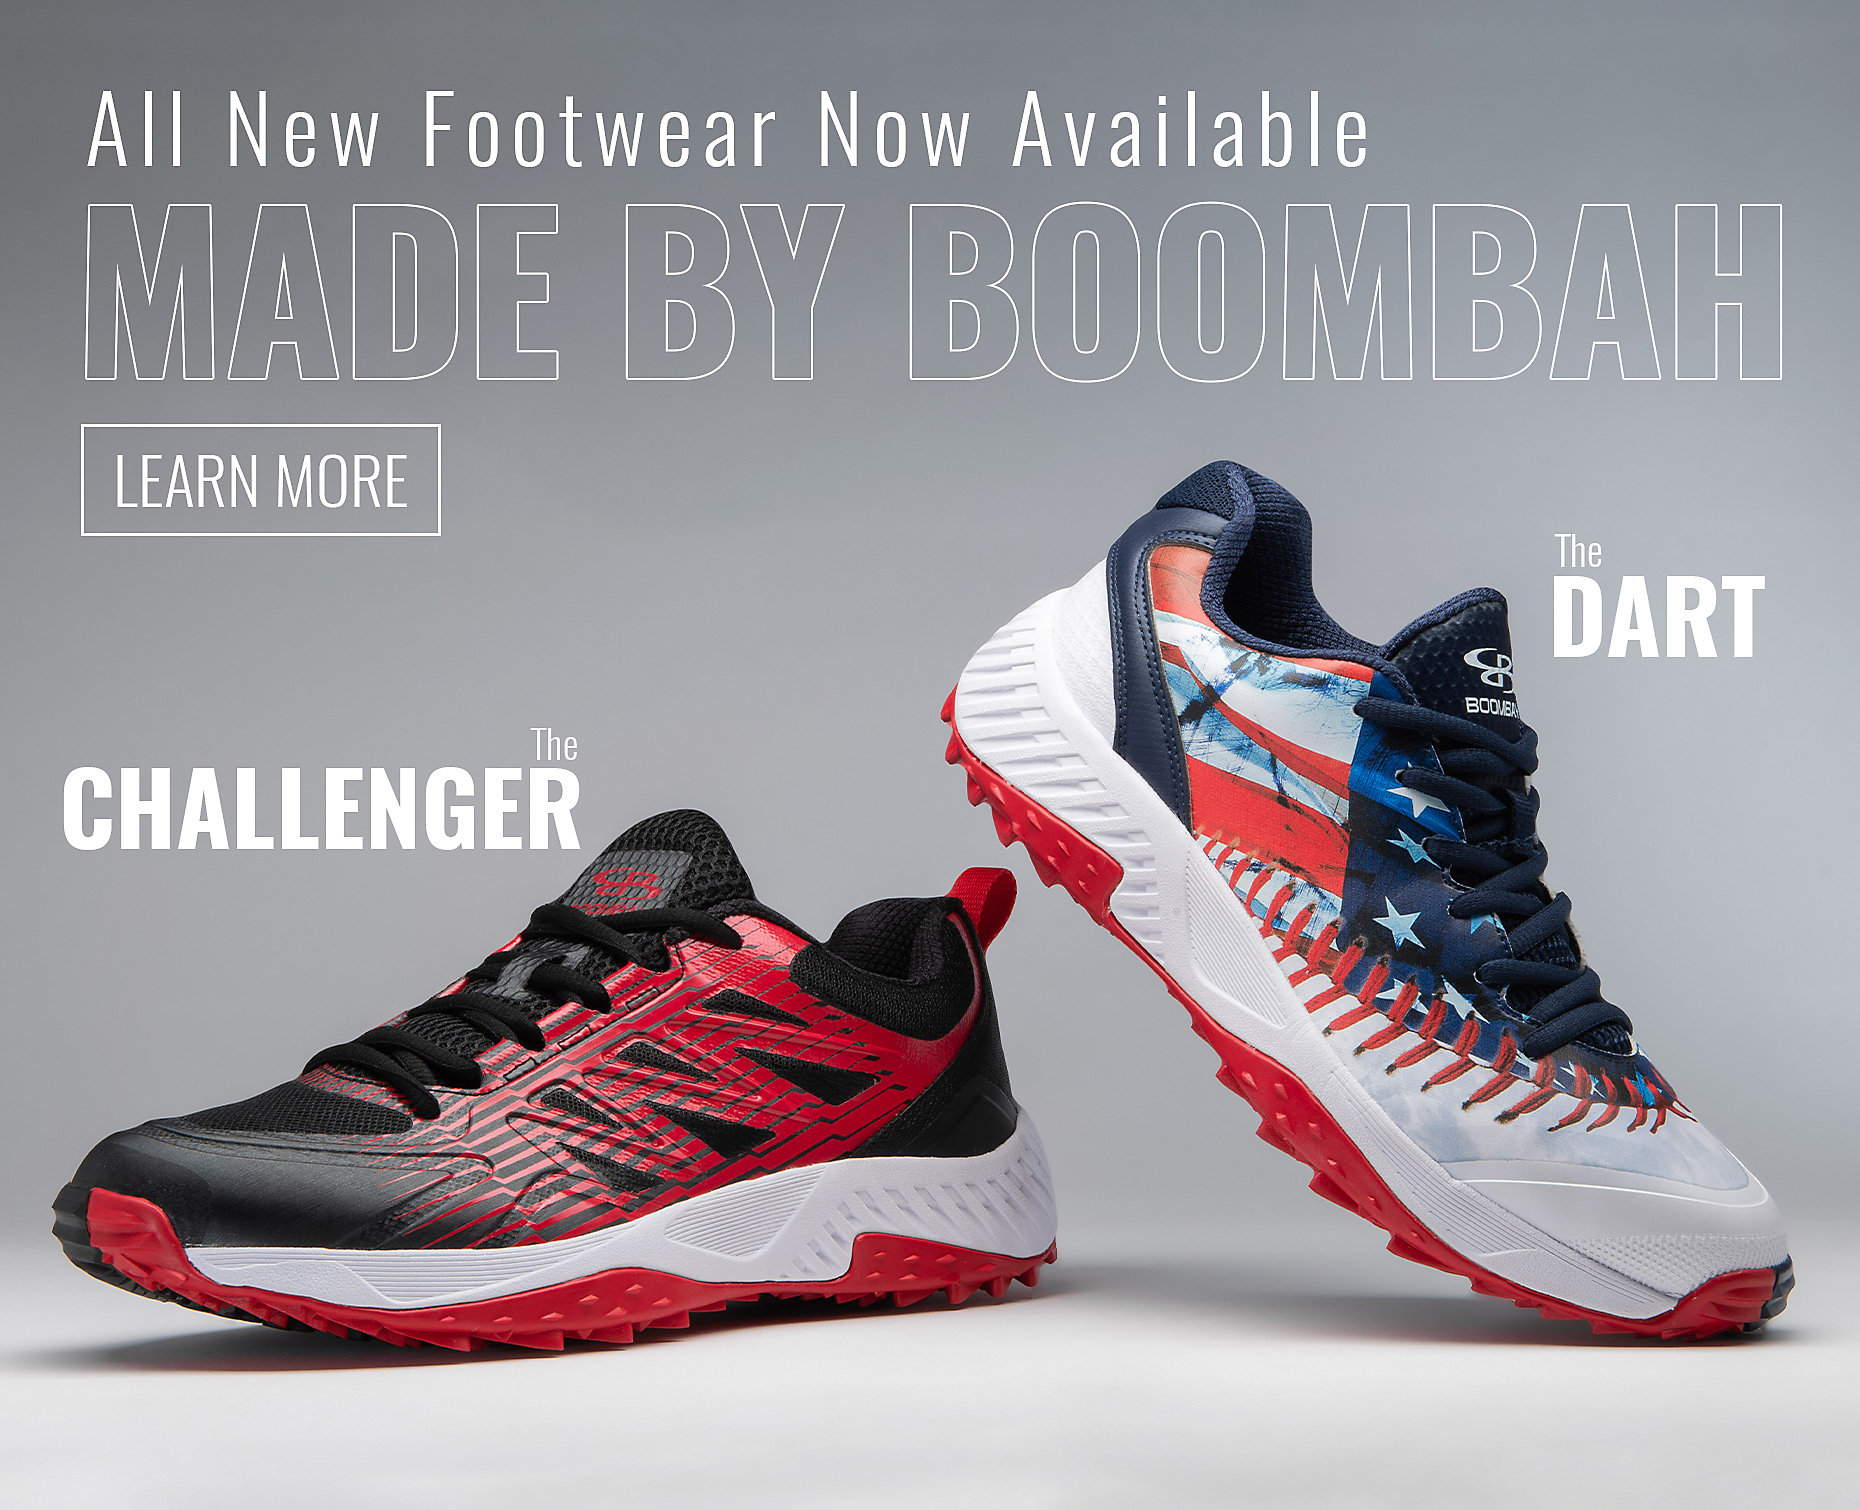 All New red Challenger Shoe hovering